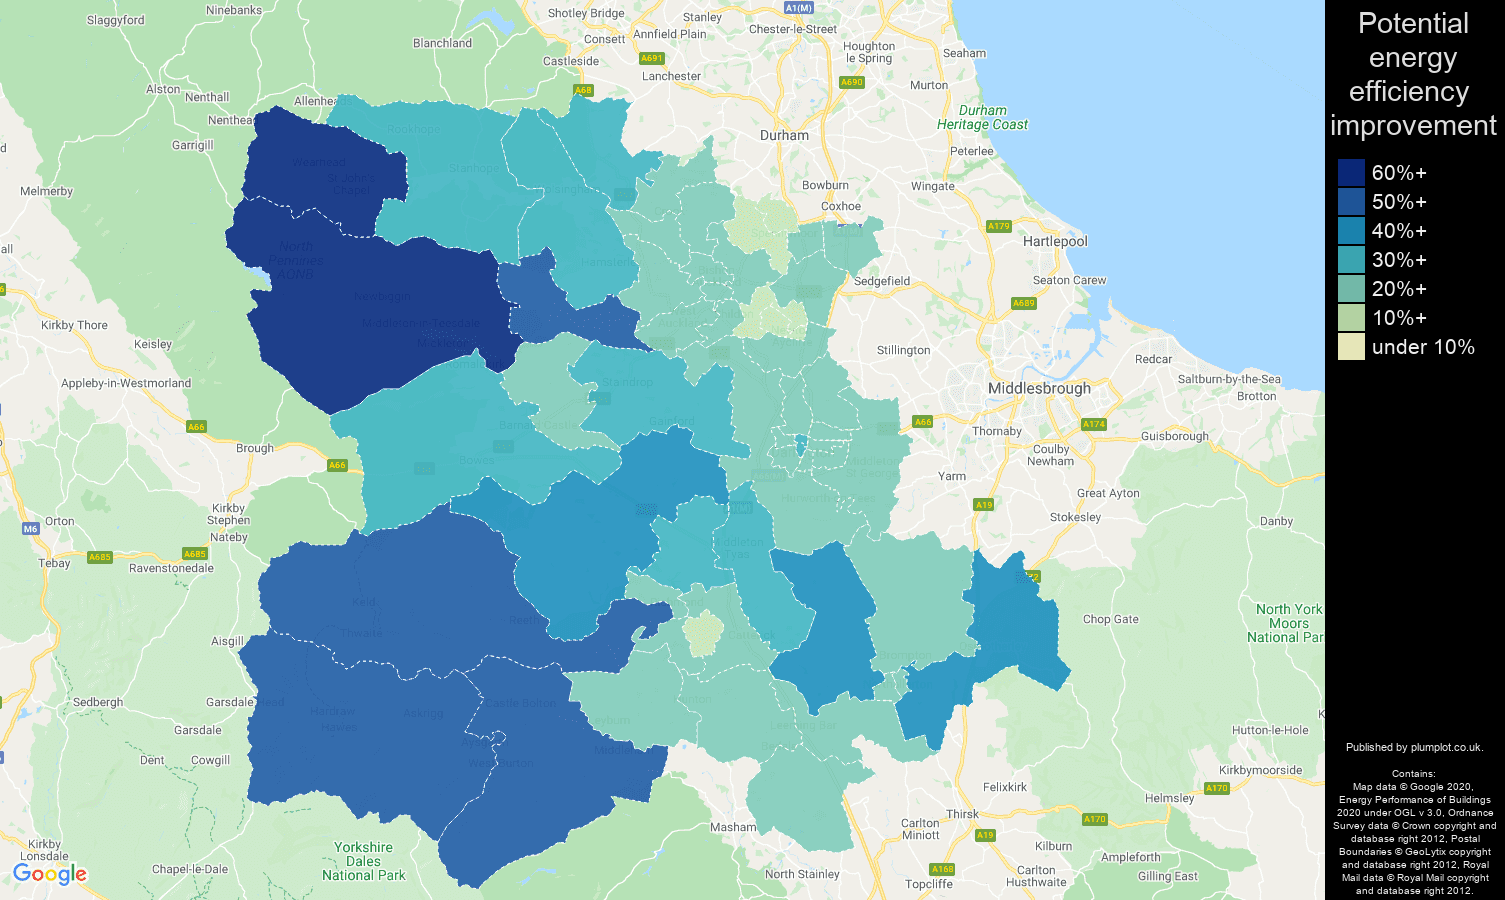 Darlington map of potential energy efficiency improvement of houses